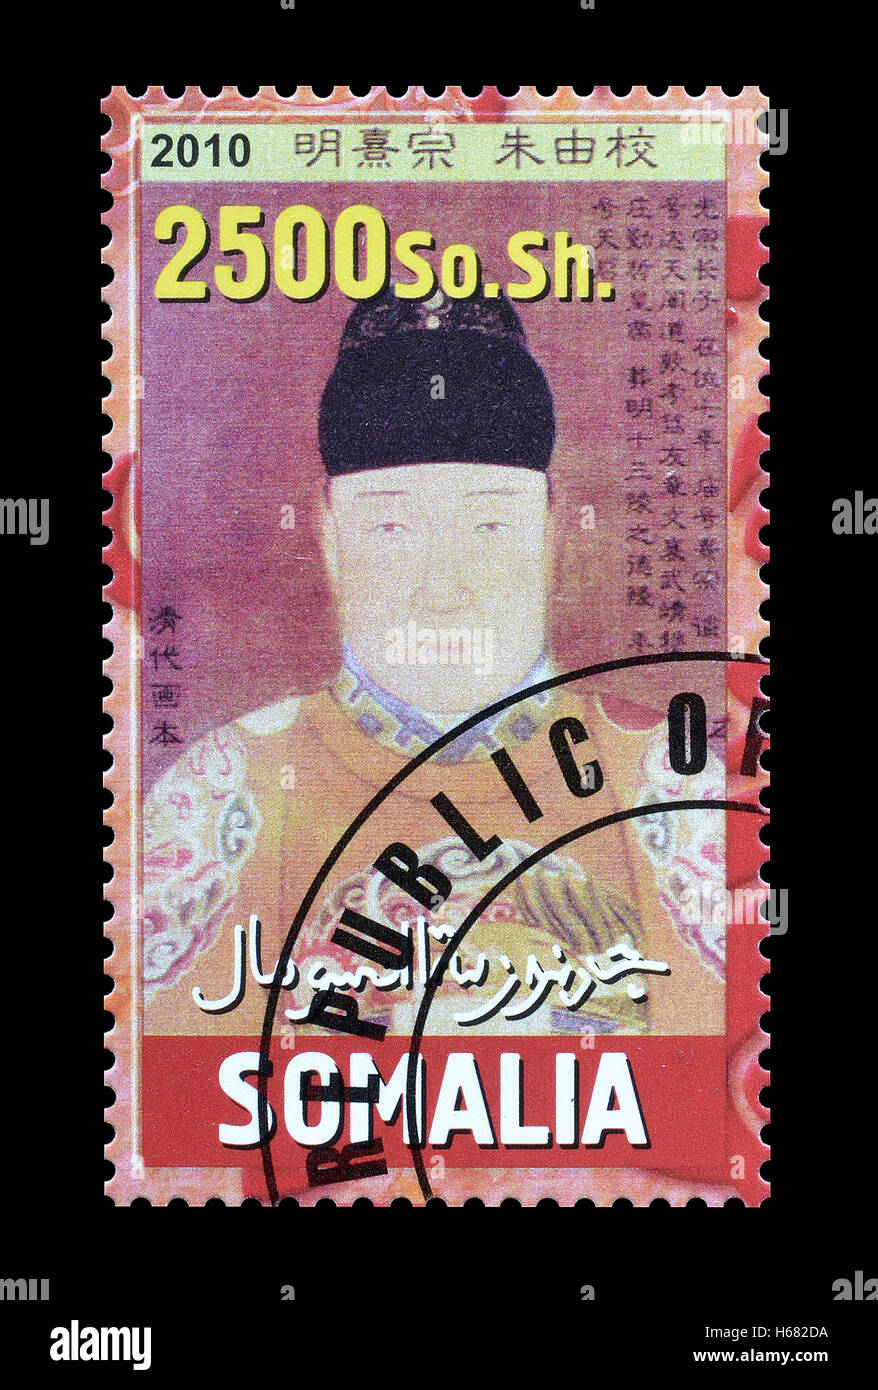 Somalia stamp 2010 Stock Photo